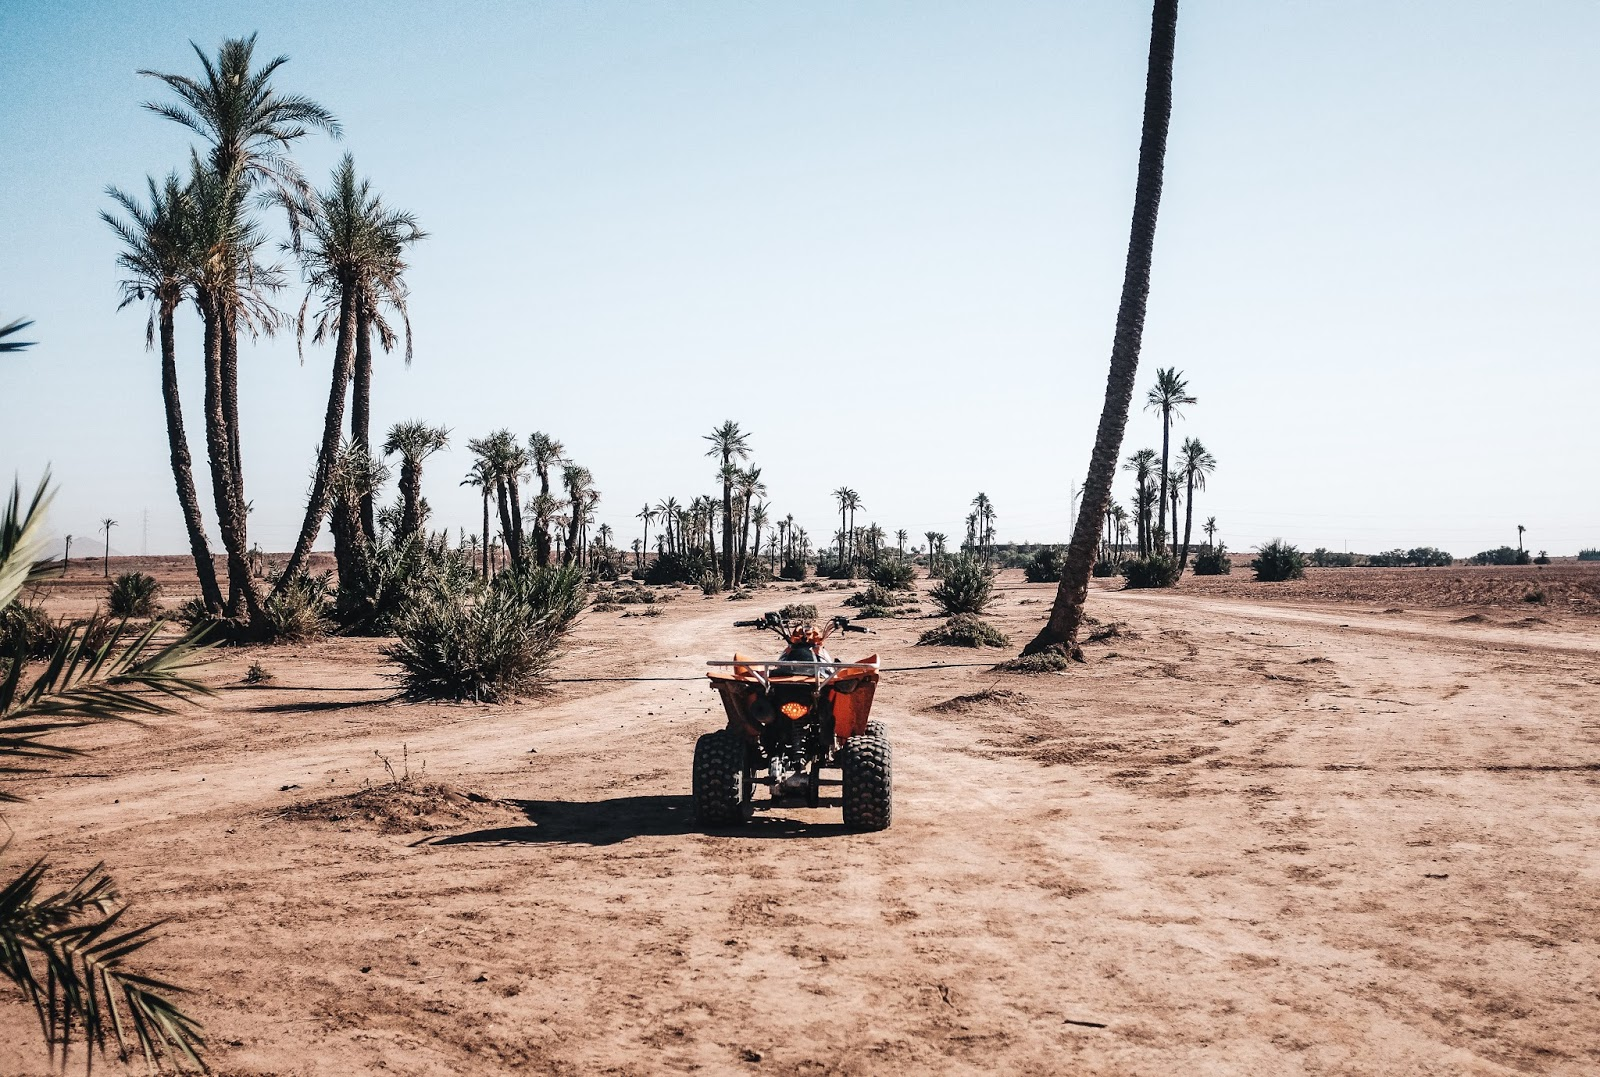 Quad Bike in Rock desert Palm Grove Marrakech Morocco